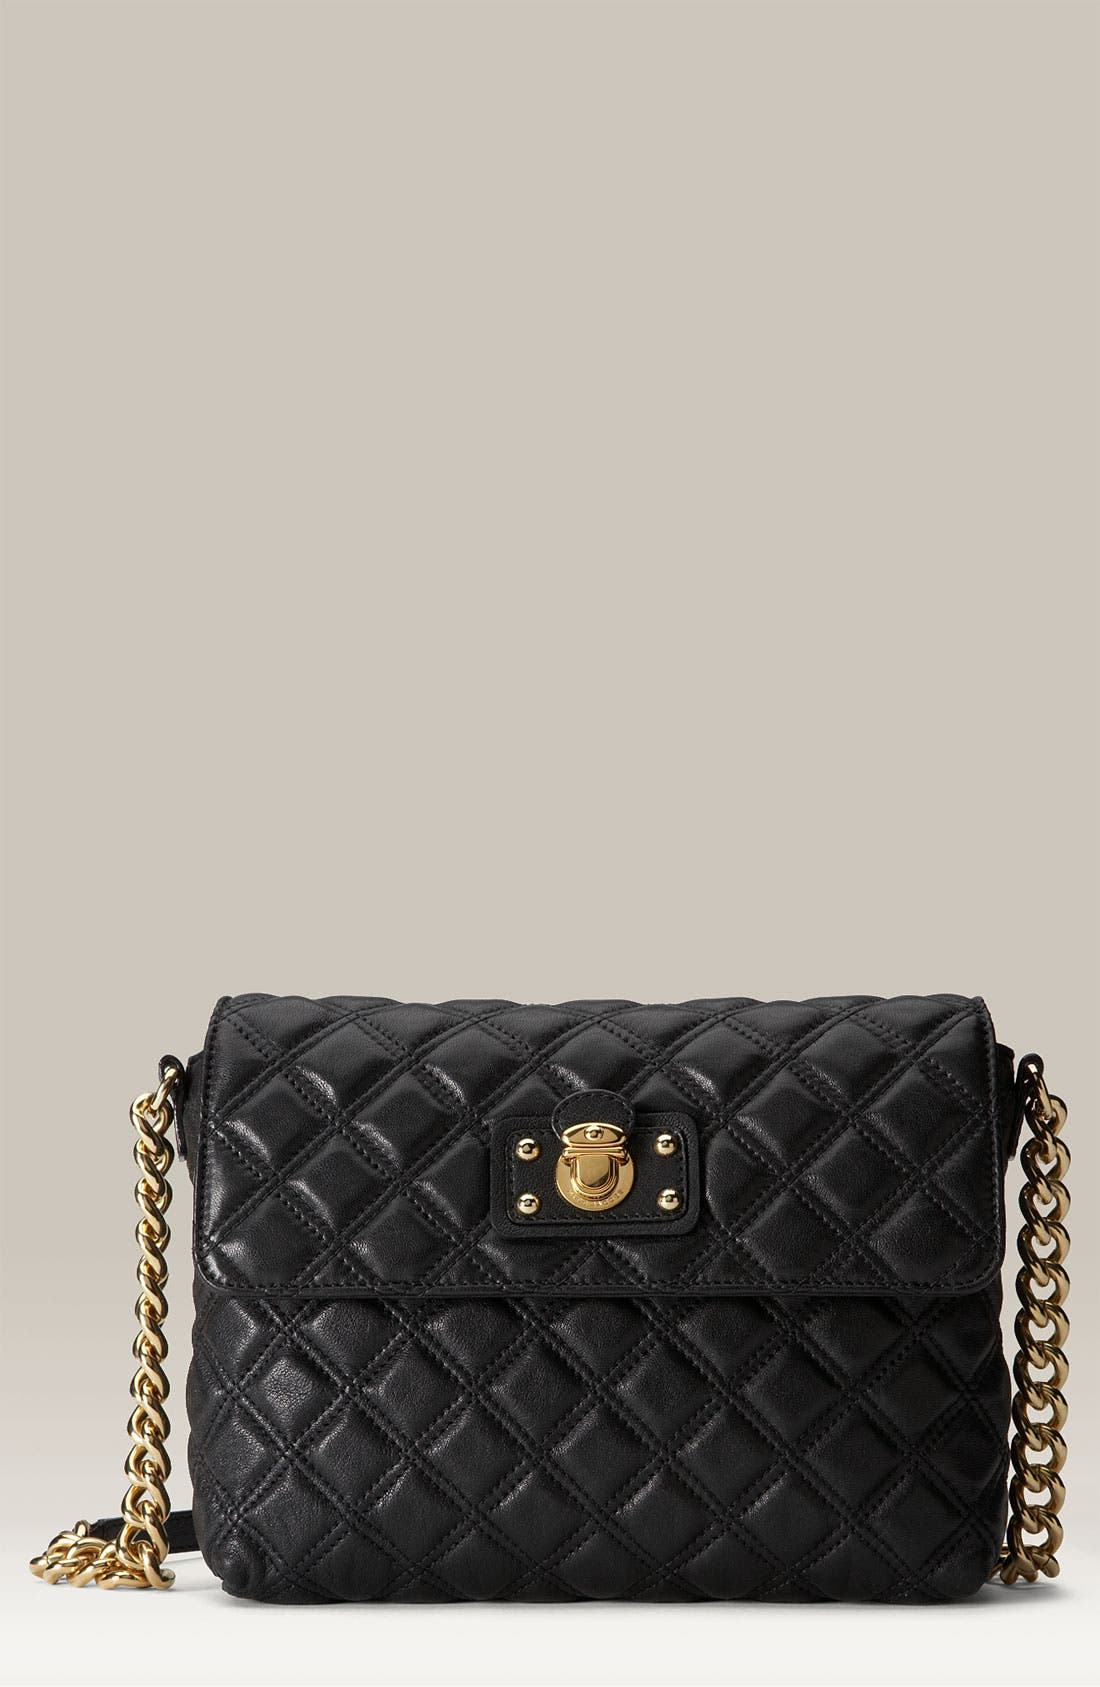 Main Image - MARC JACOBS 'The Large Single' Shoulder Bag